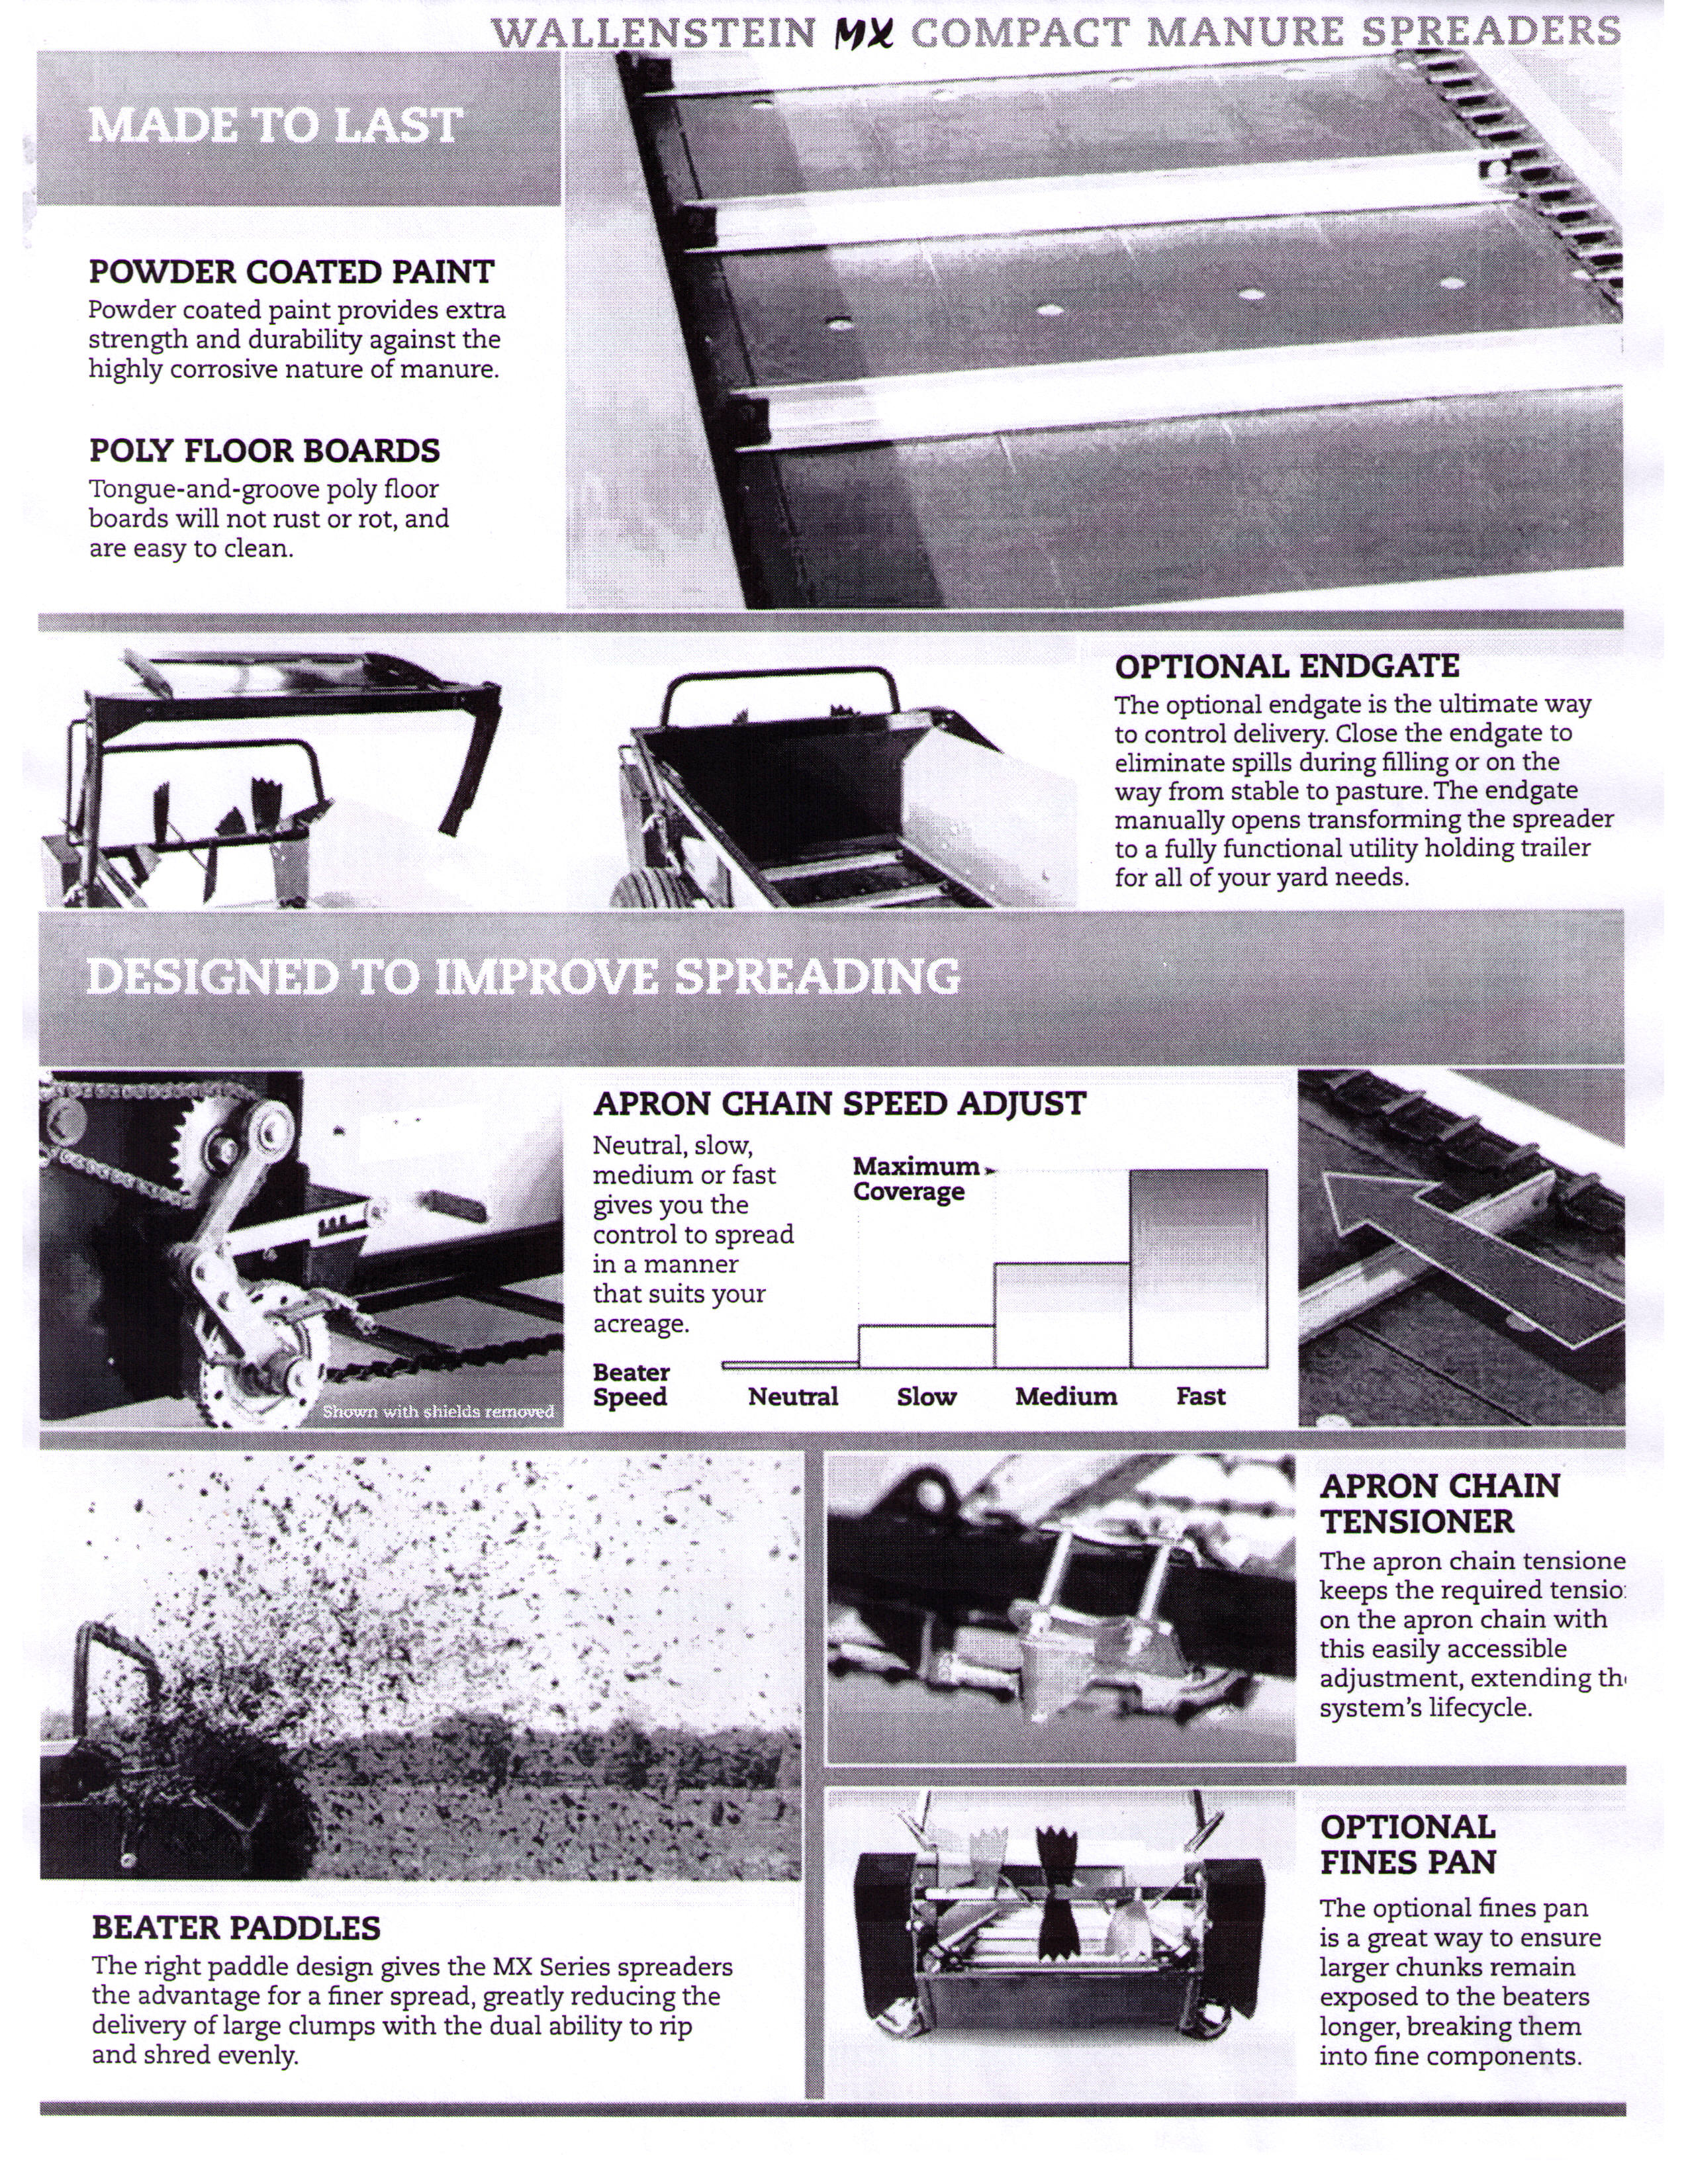 Features Of MX Series Manure Spreaders